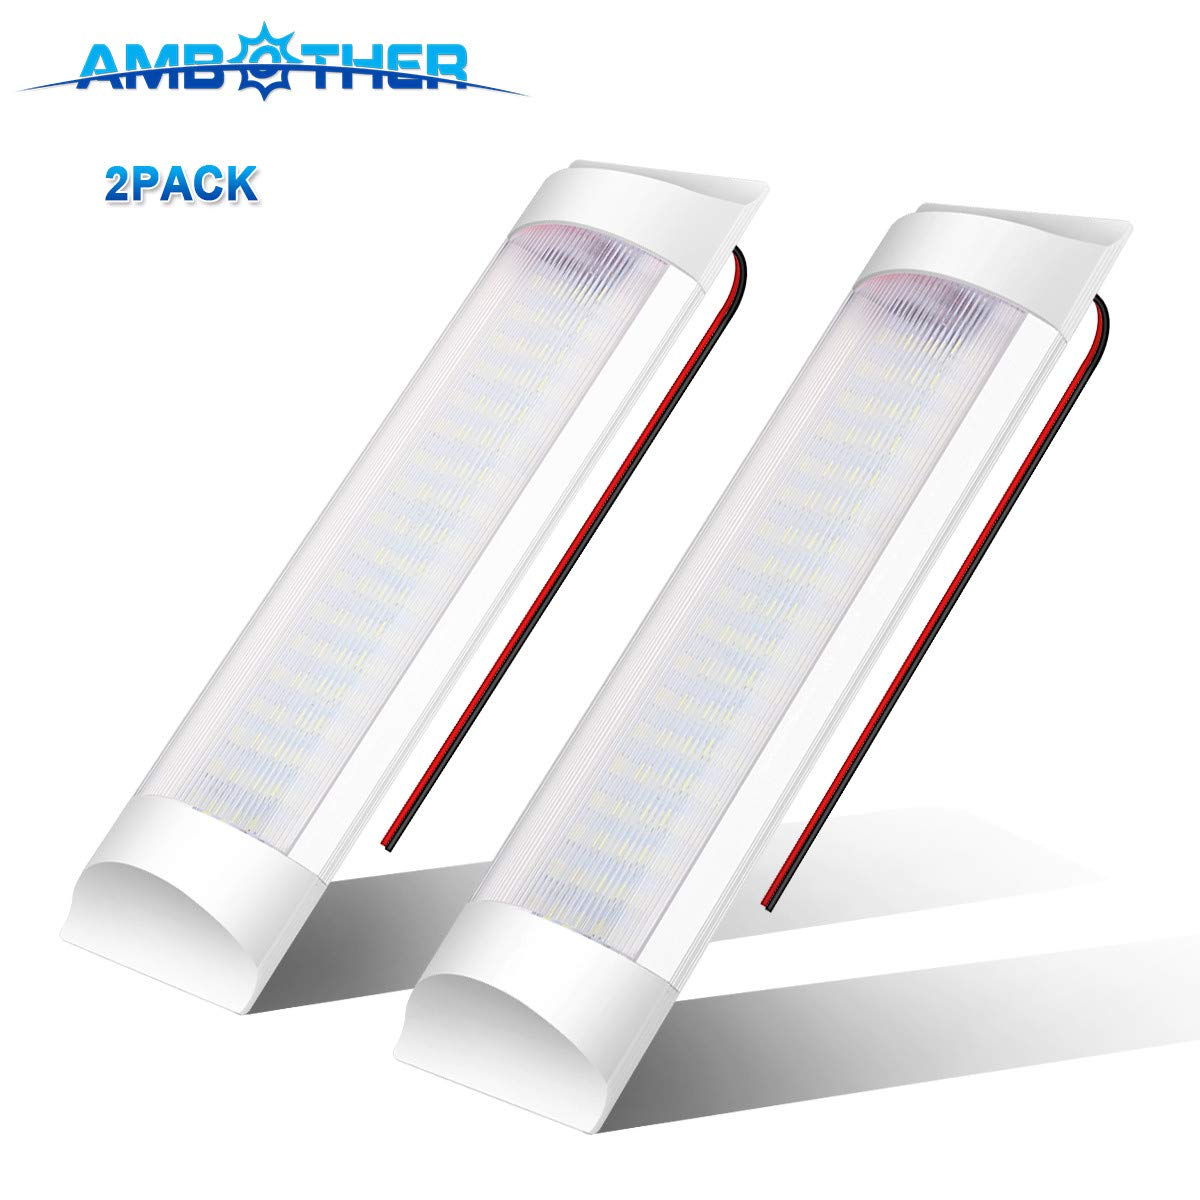 AMBOTHER LED RV Ceiling Light Roof Lights 2 X 600LM 12V LED Interior Lighting for RV/Camper/Trailer/Motorhome/Van with ON/OFF Switch White (Pack of 2) (72 LED)